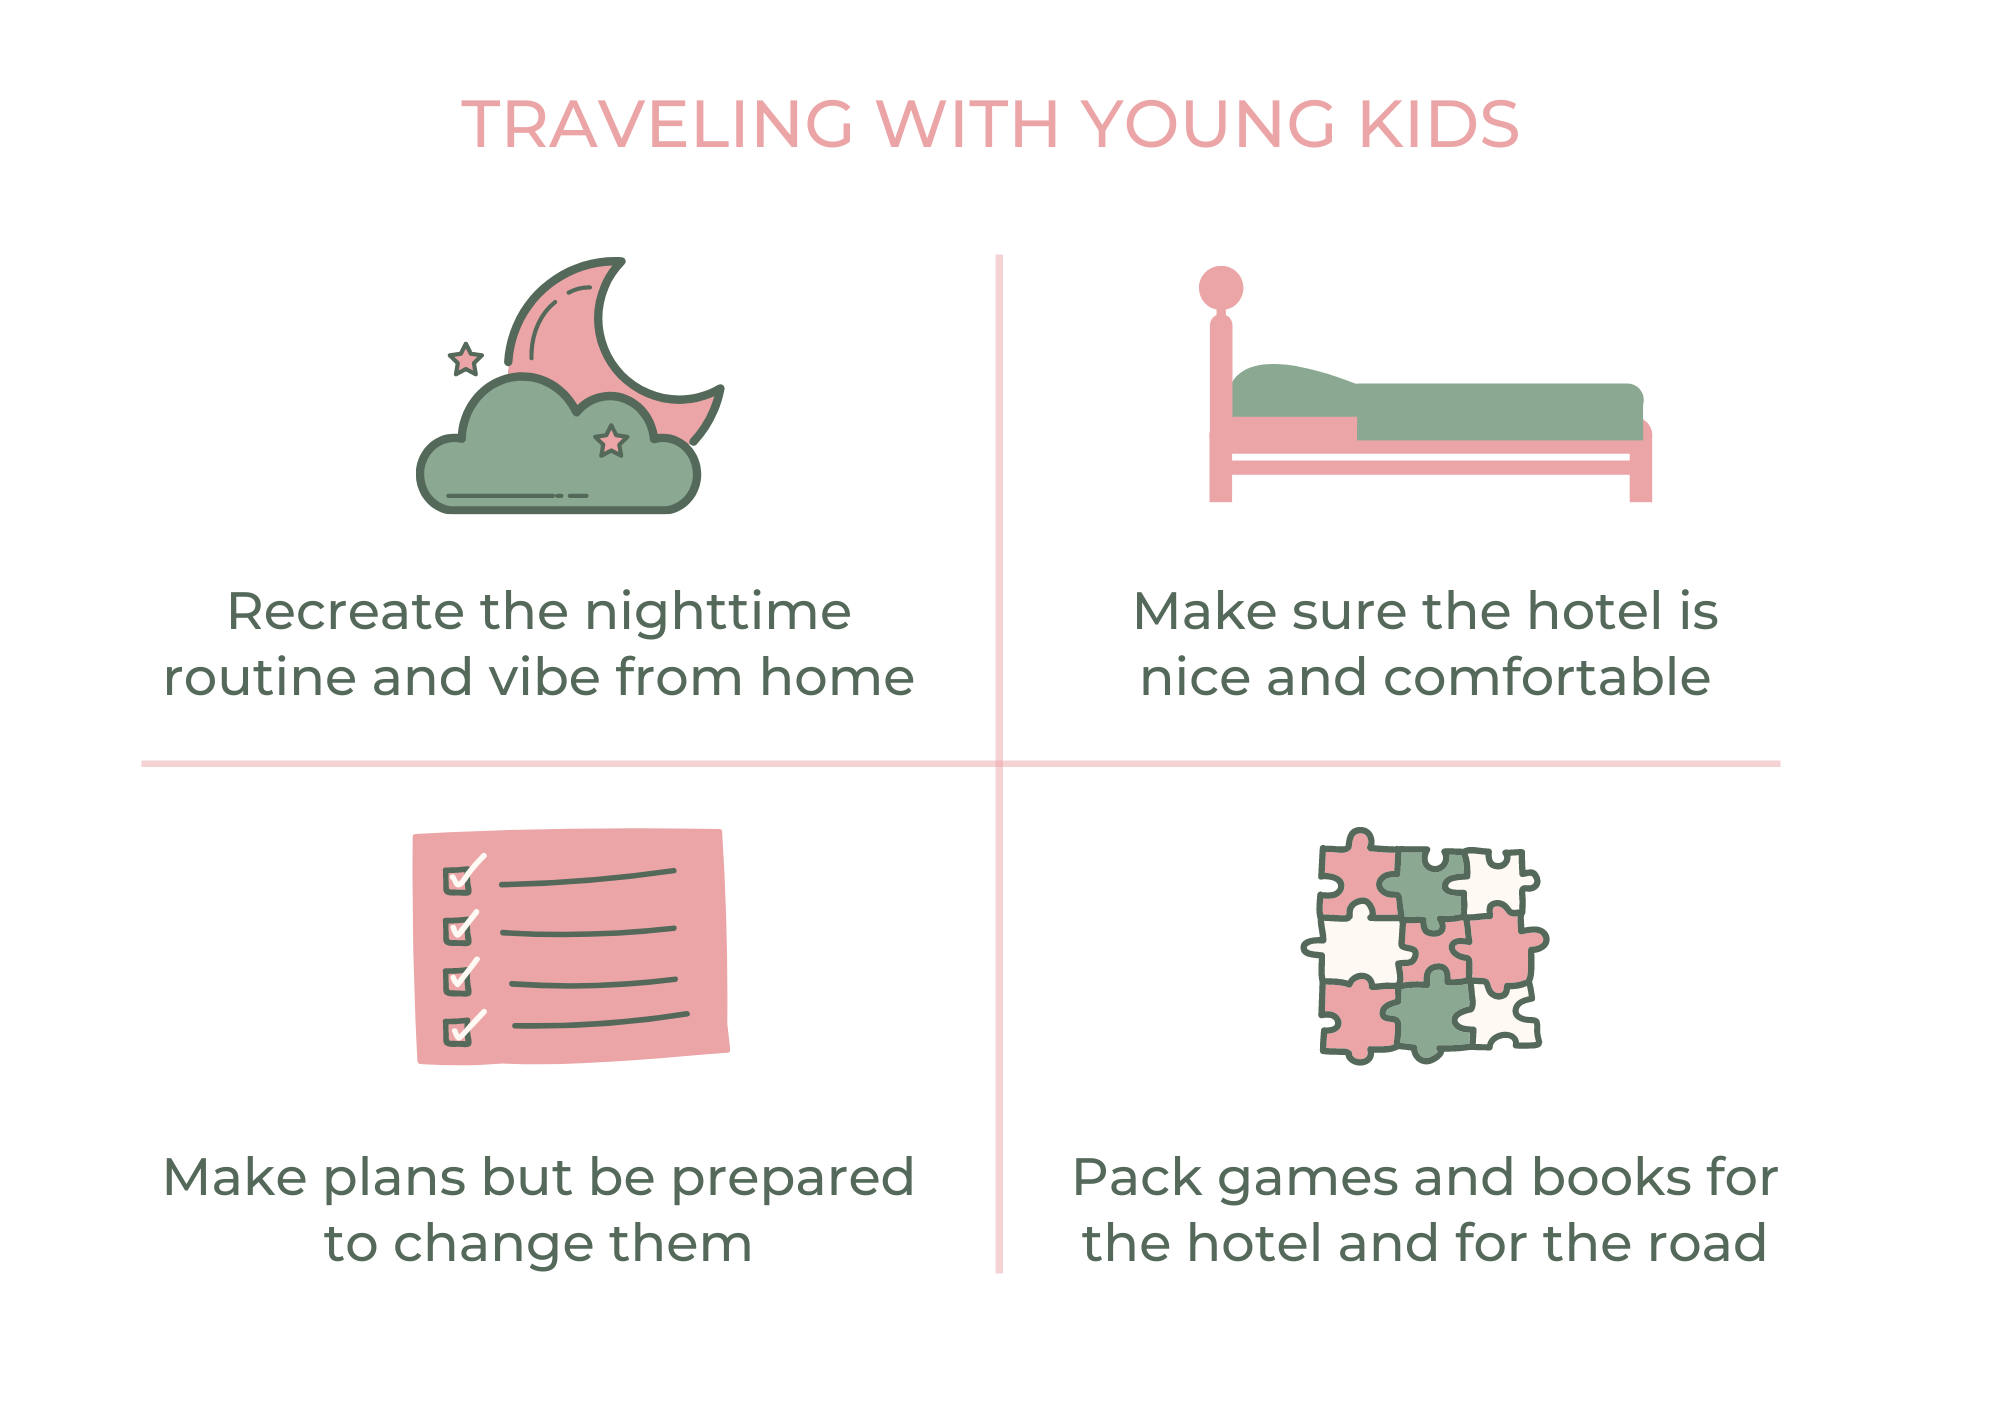 Four tips to travel with young kids